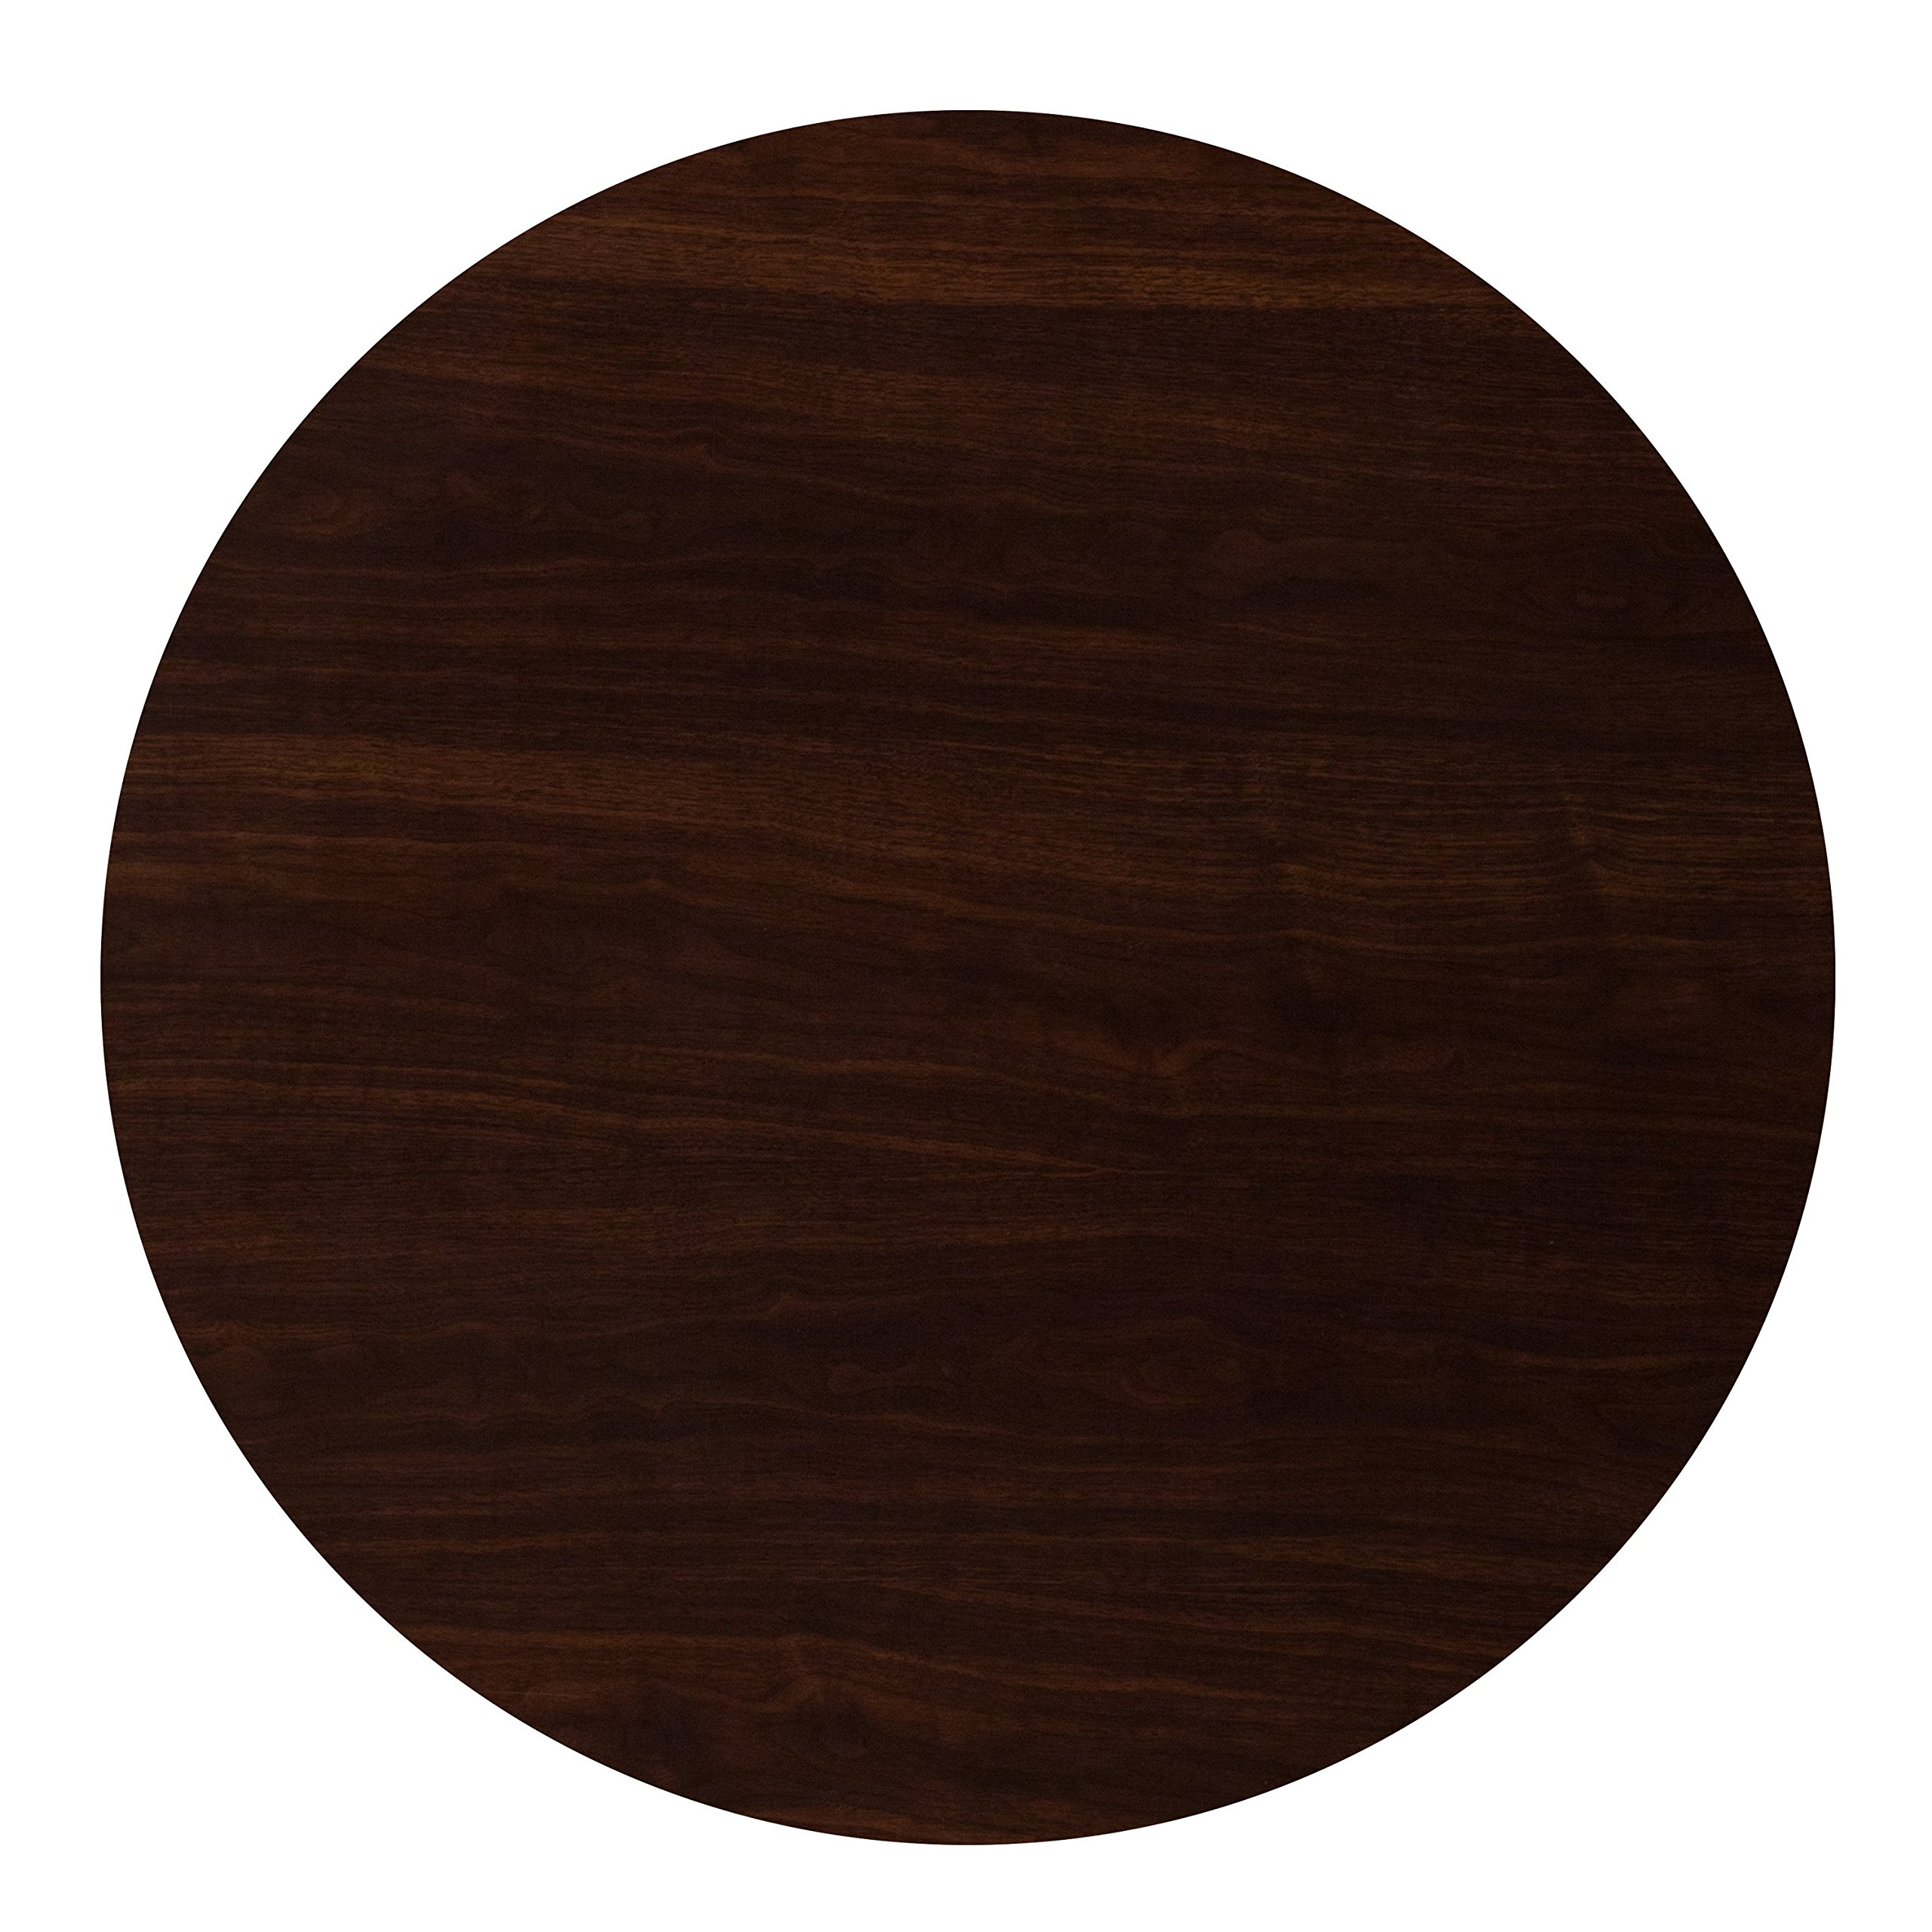 Flash Furniture 36'' Round High-Gloss Walnut Resin Table Top with 2'' Thick Drop-Lip